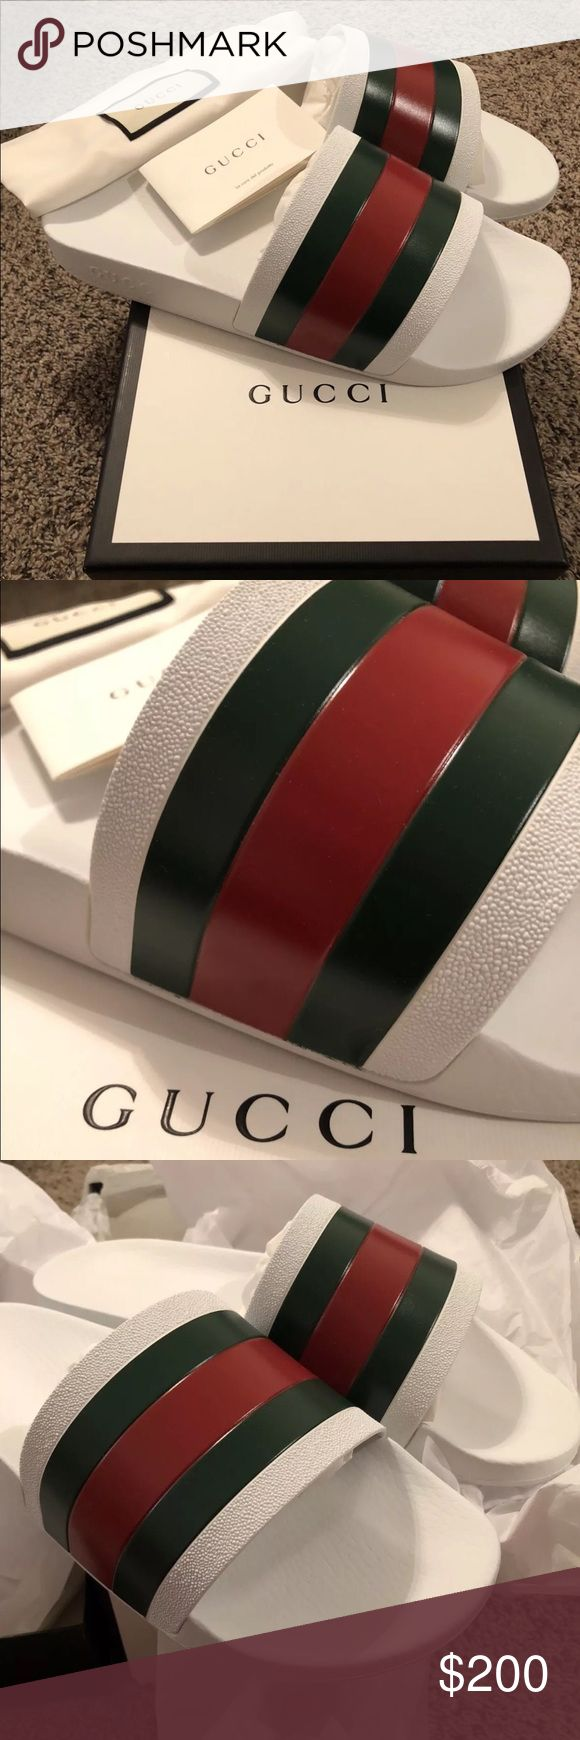 Men's White Gucci Slides Size 6-12 All of our products are 100% authentic 🛍We have a very negotiable service 🛍 We provide overnight shipping and express shipping 🛍 Our transactions are made through third party applications for faster shipping 🛍 If you are interested in buying this product please contact us via 646-431-6521 🛍 Gucci Shoes Sandals & Flip-Flops